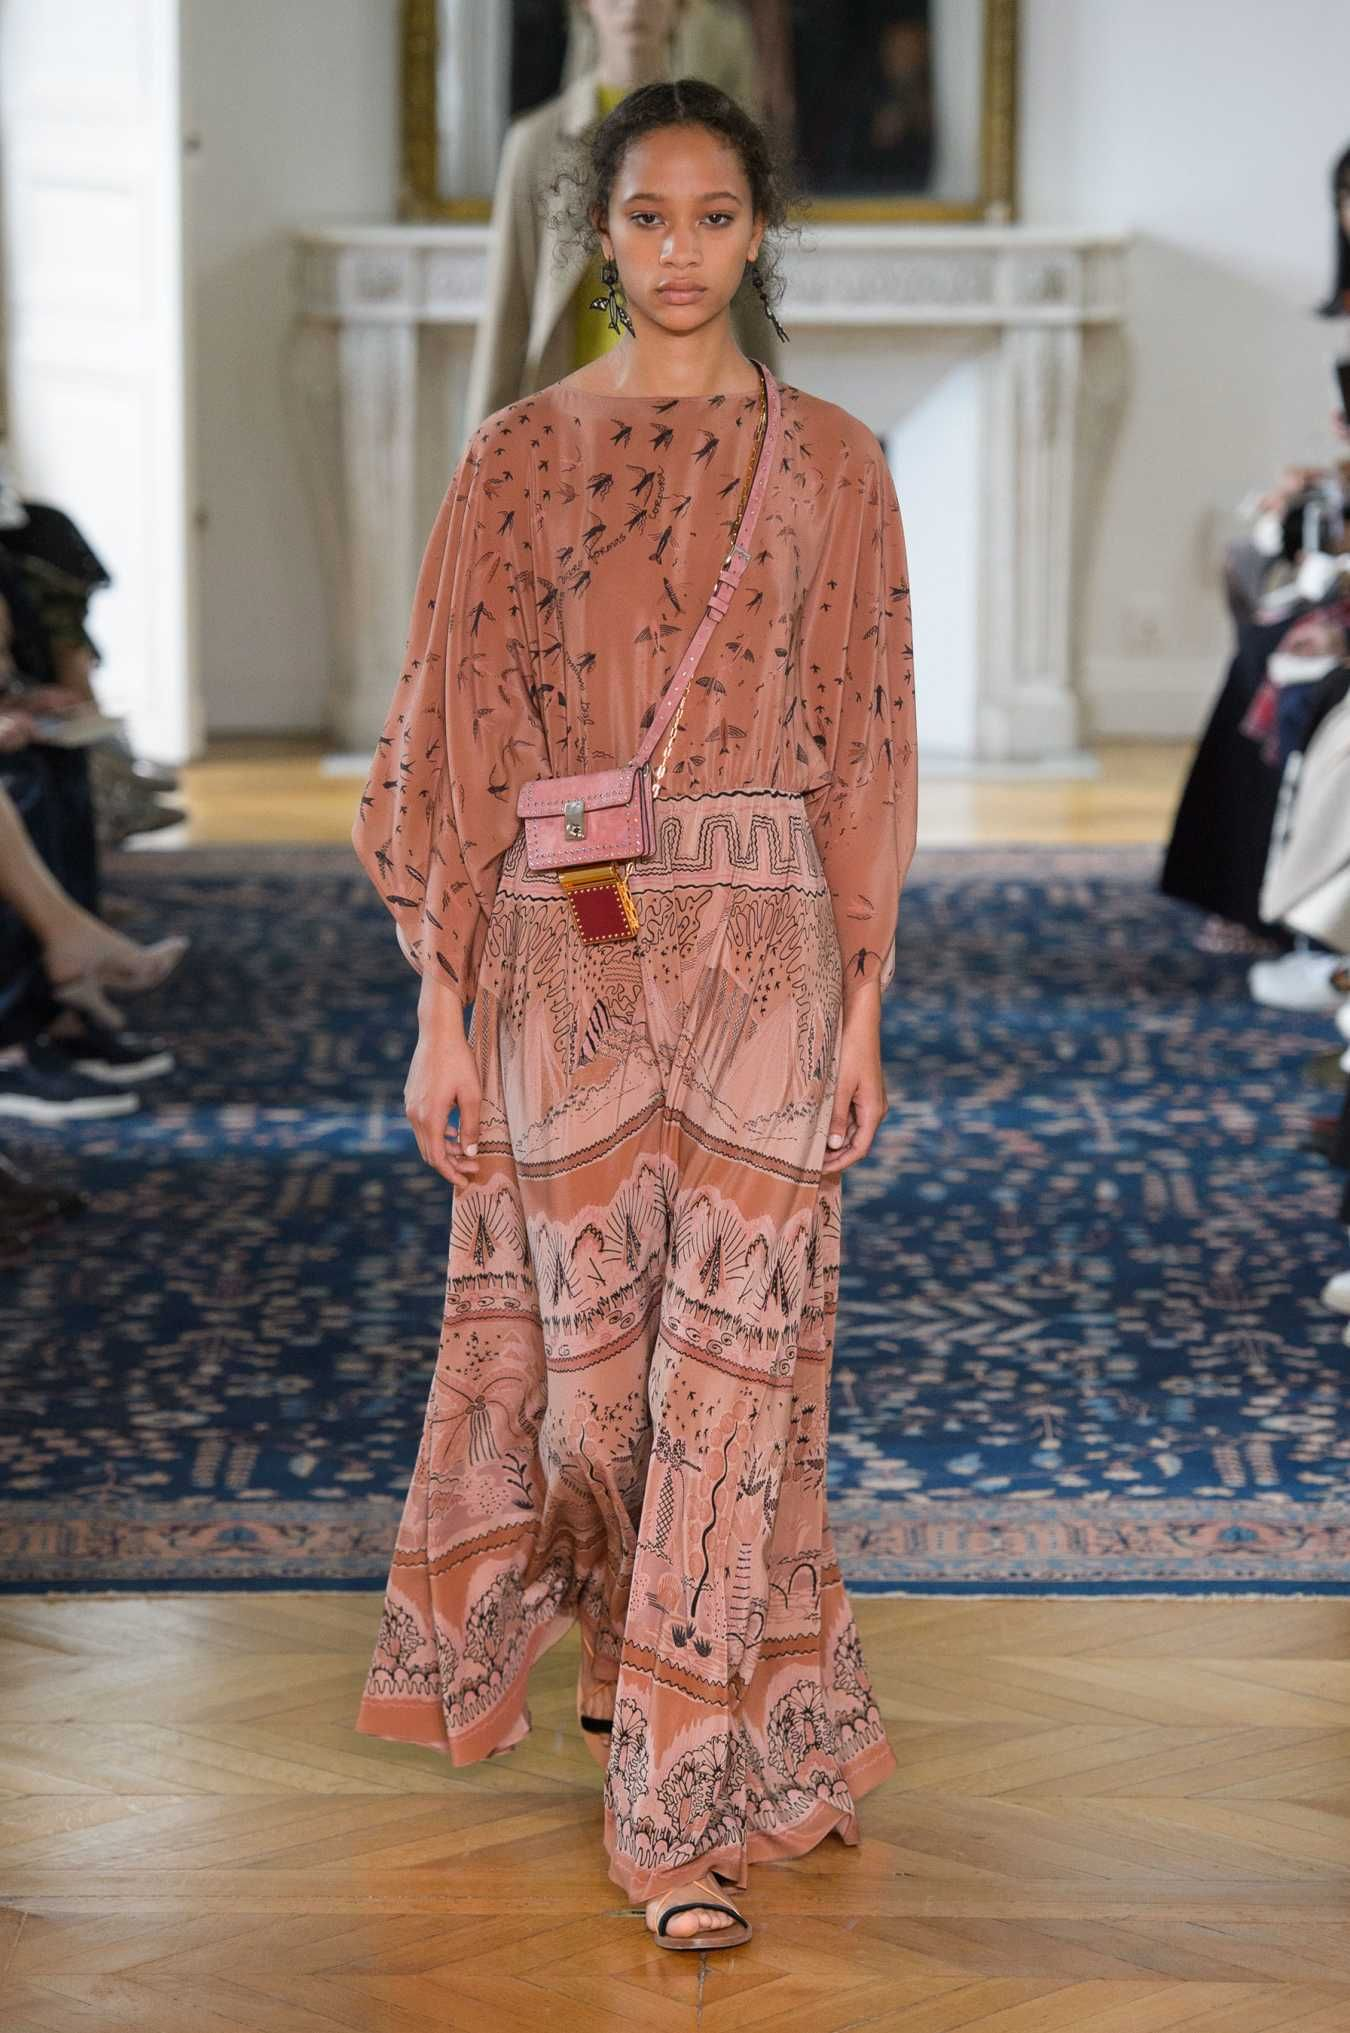 A look from the Valentino spring 2017 collection. Photo: Imaxtree.